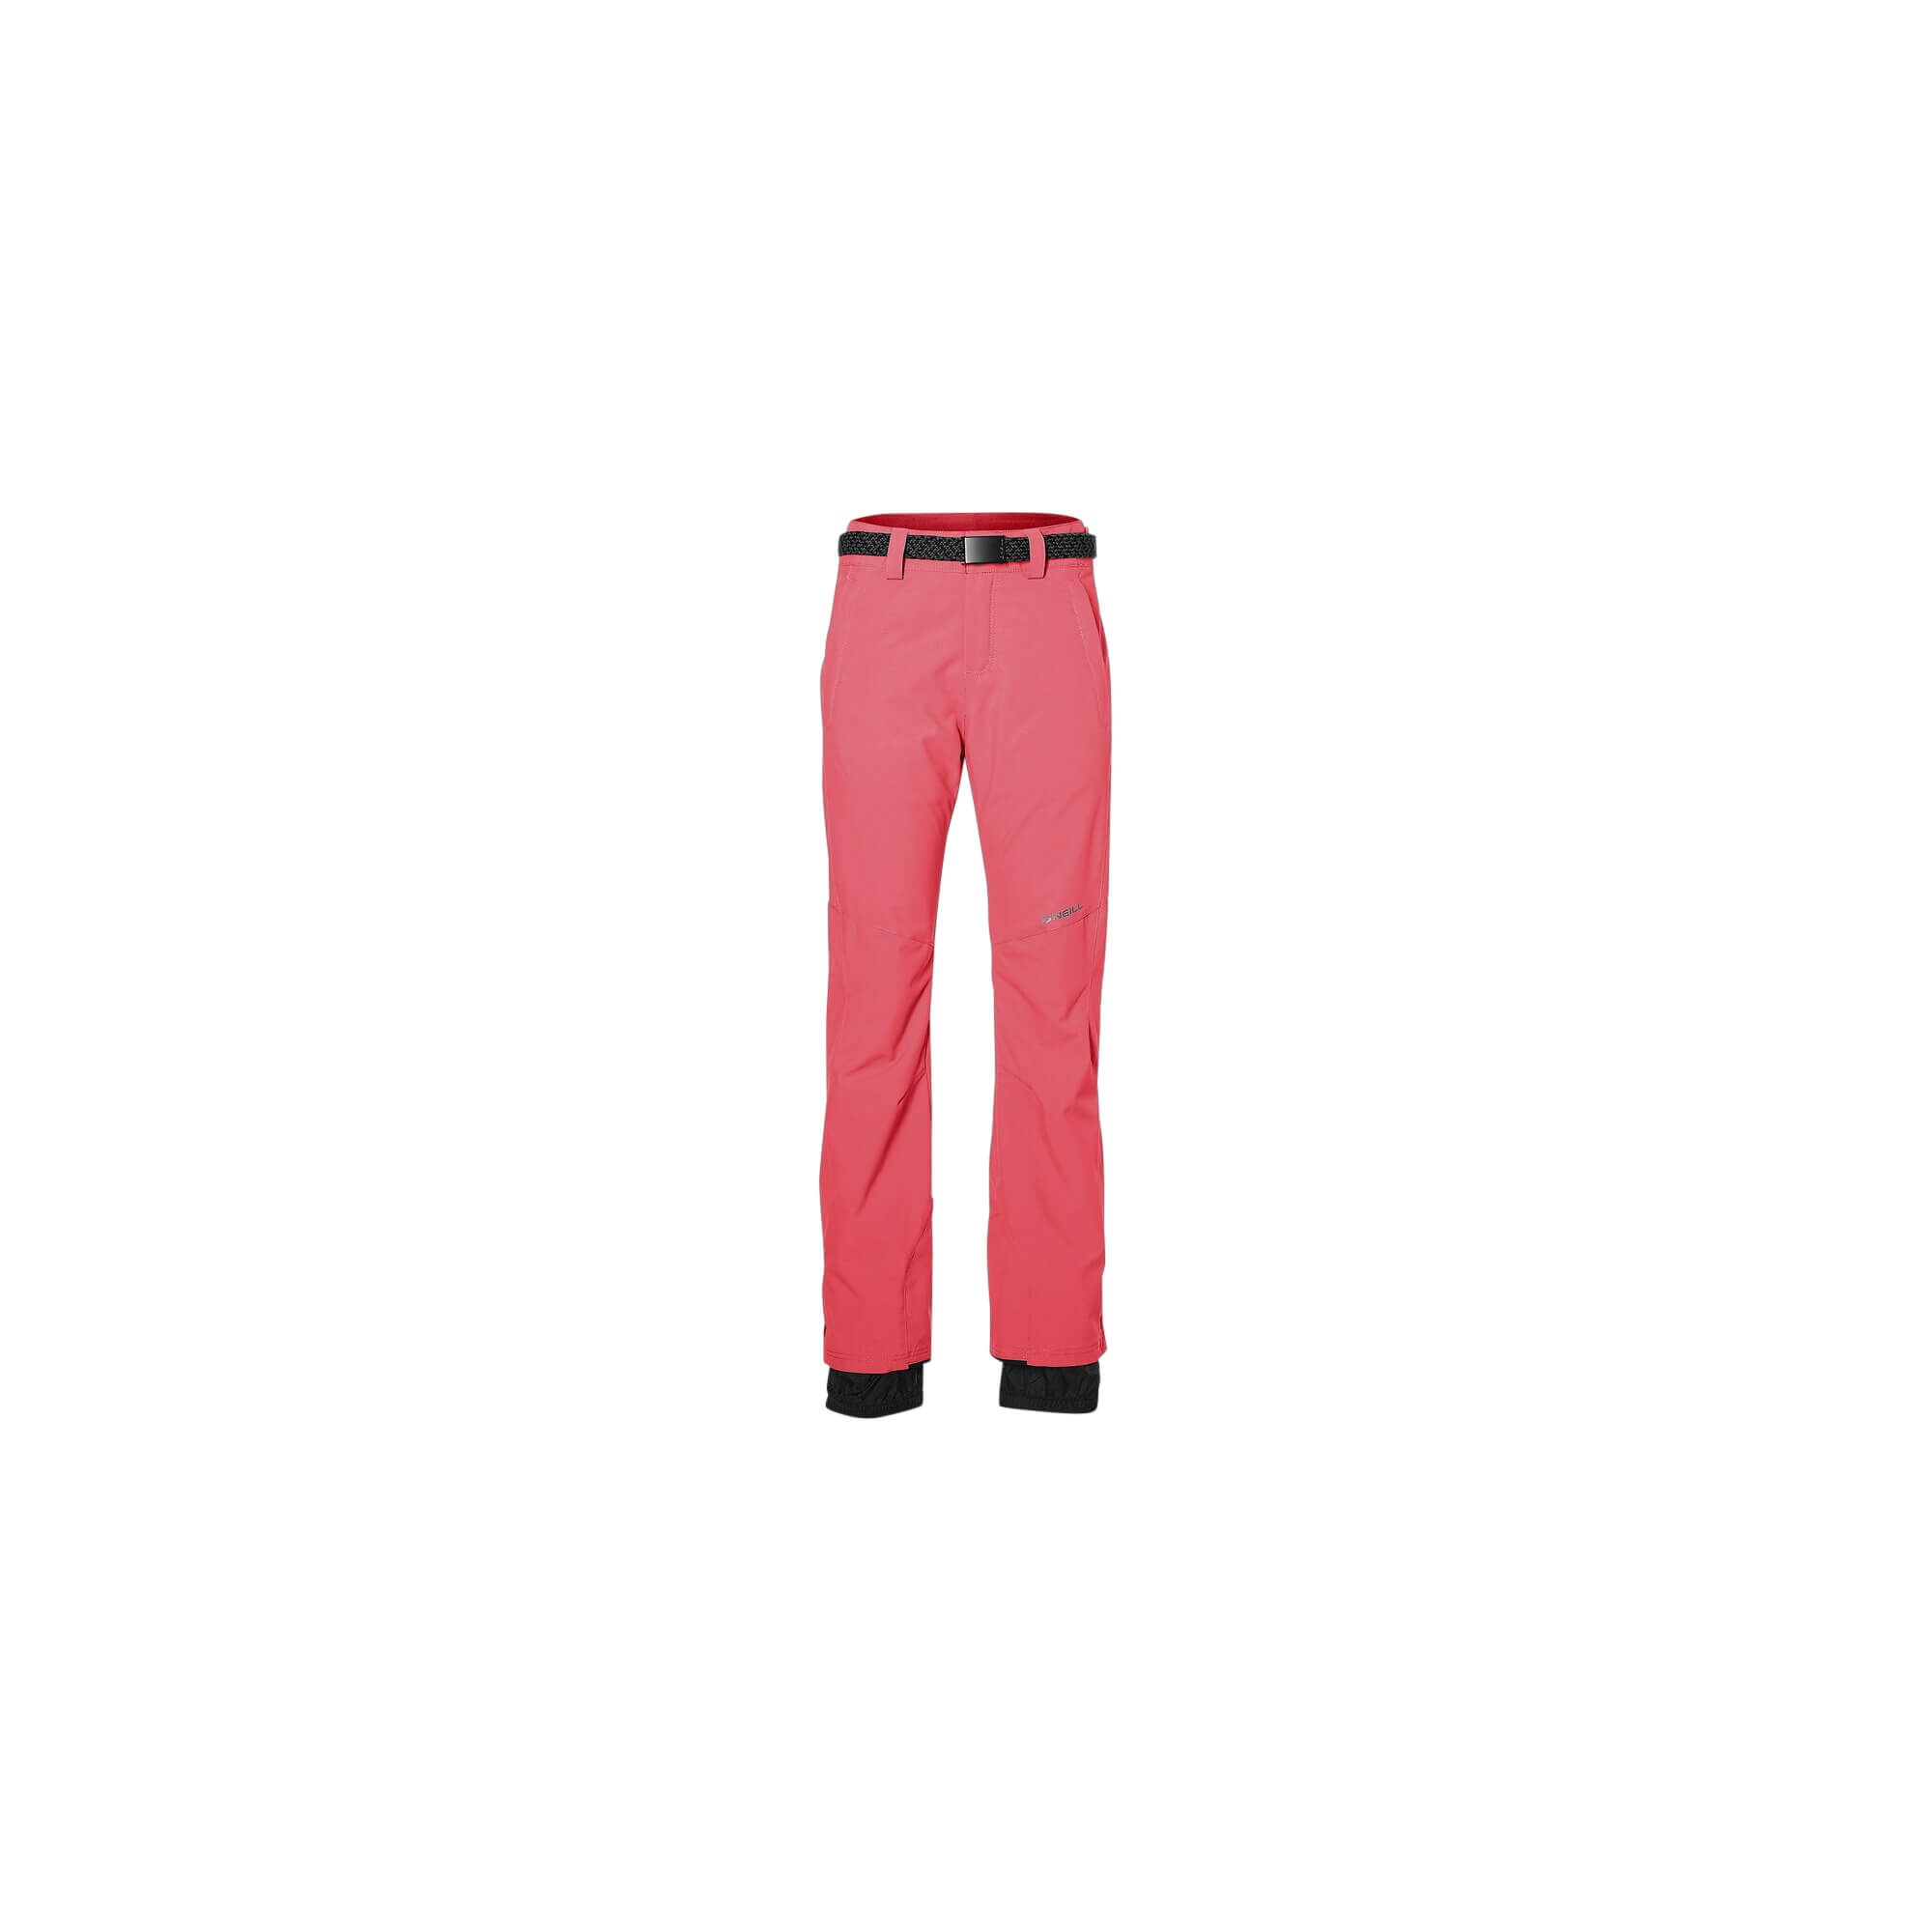 PW Star Pants Slim imagine produs